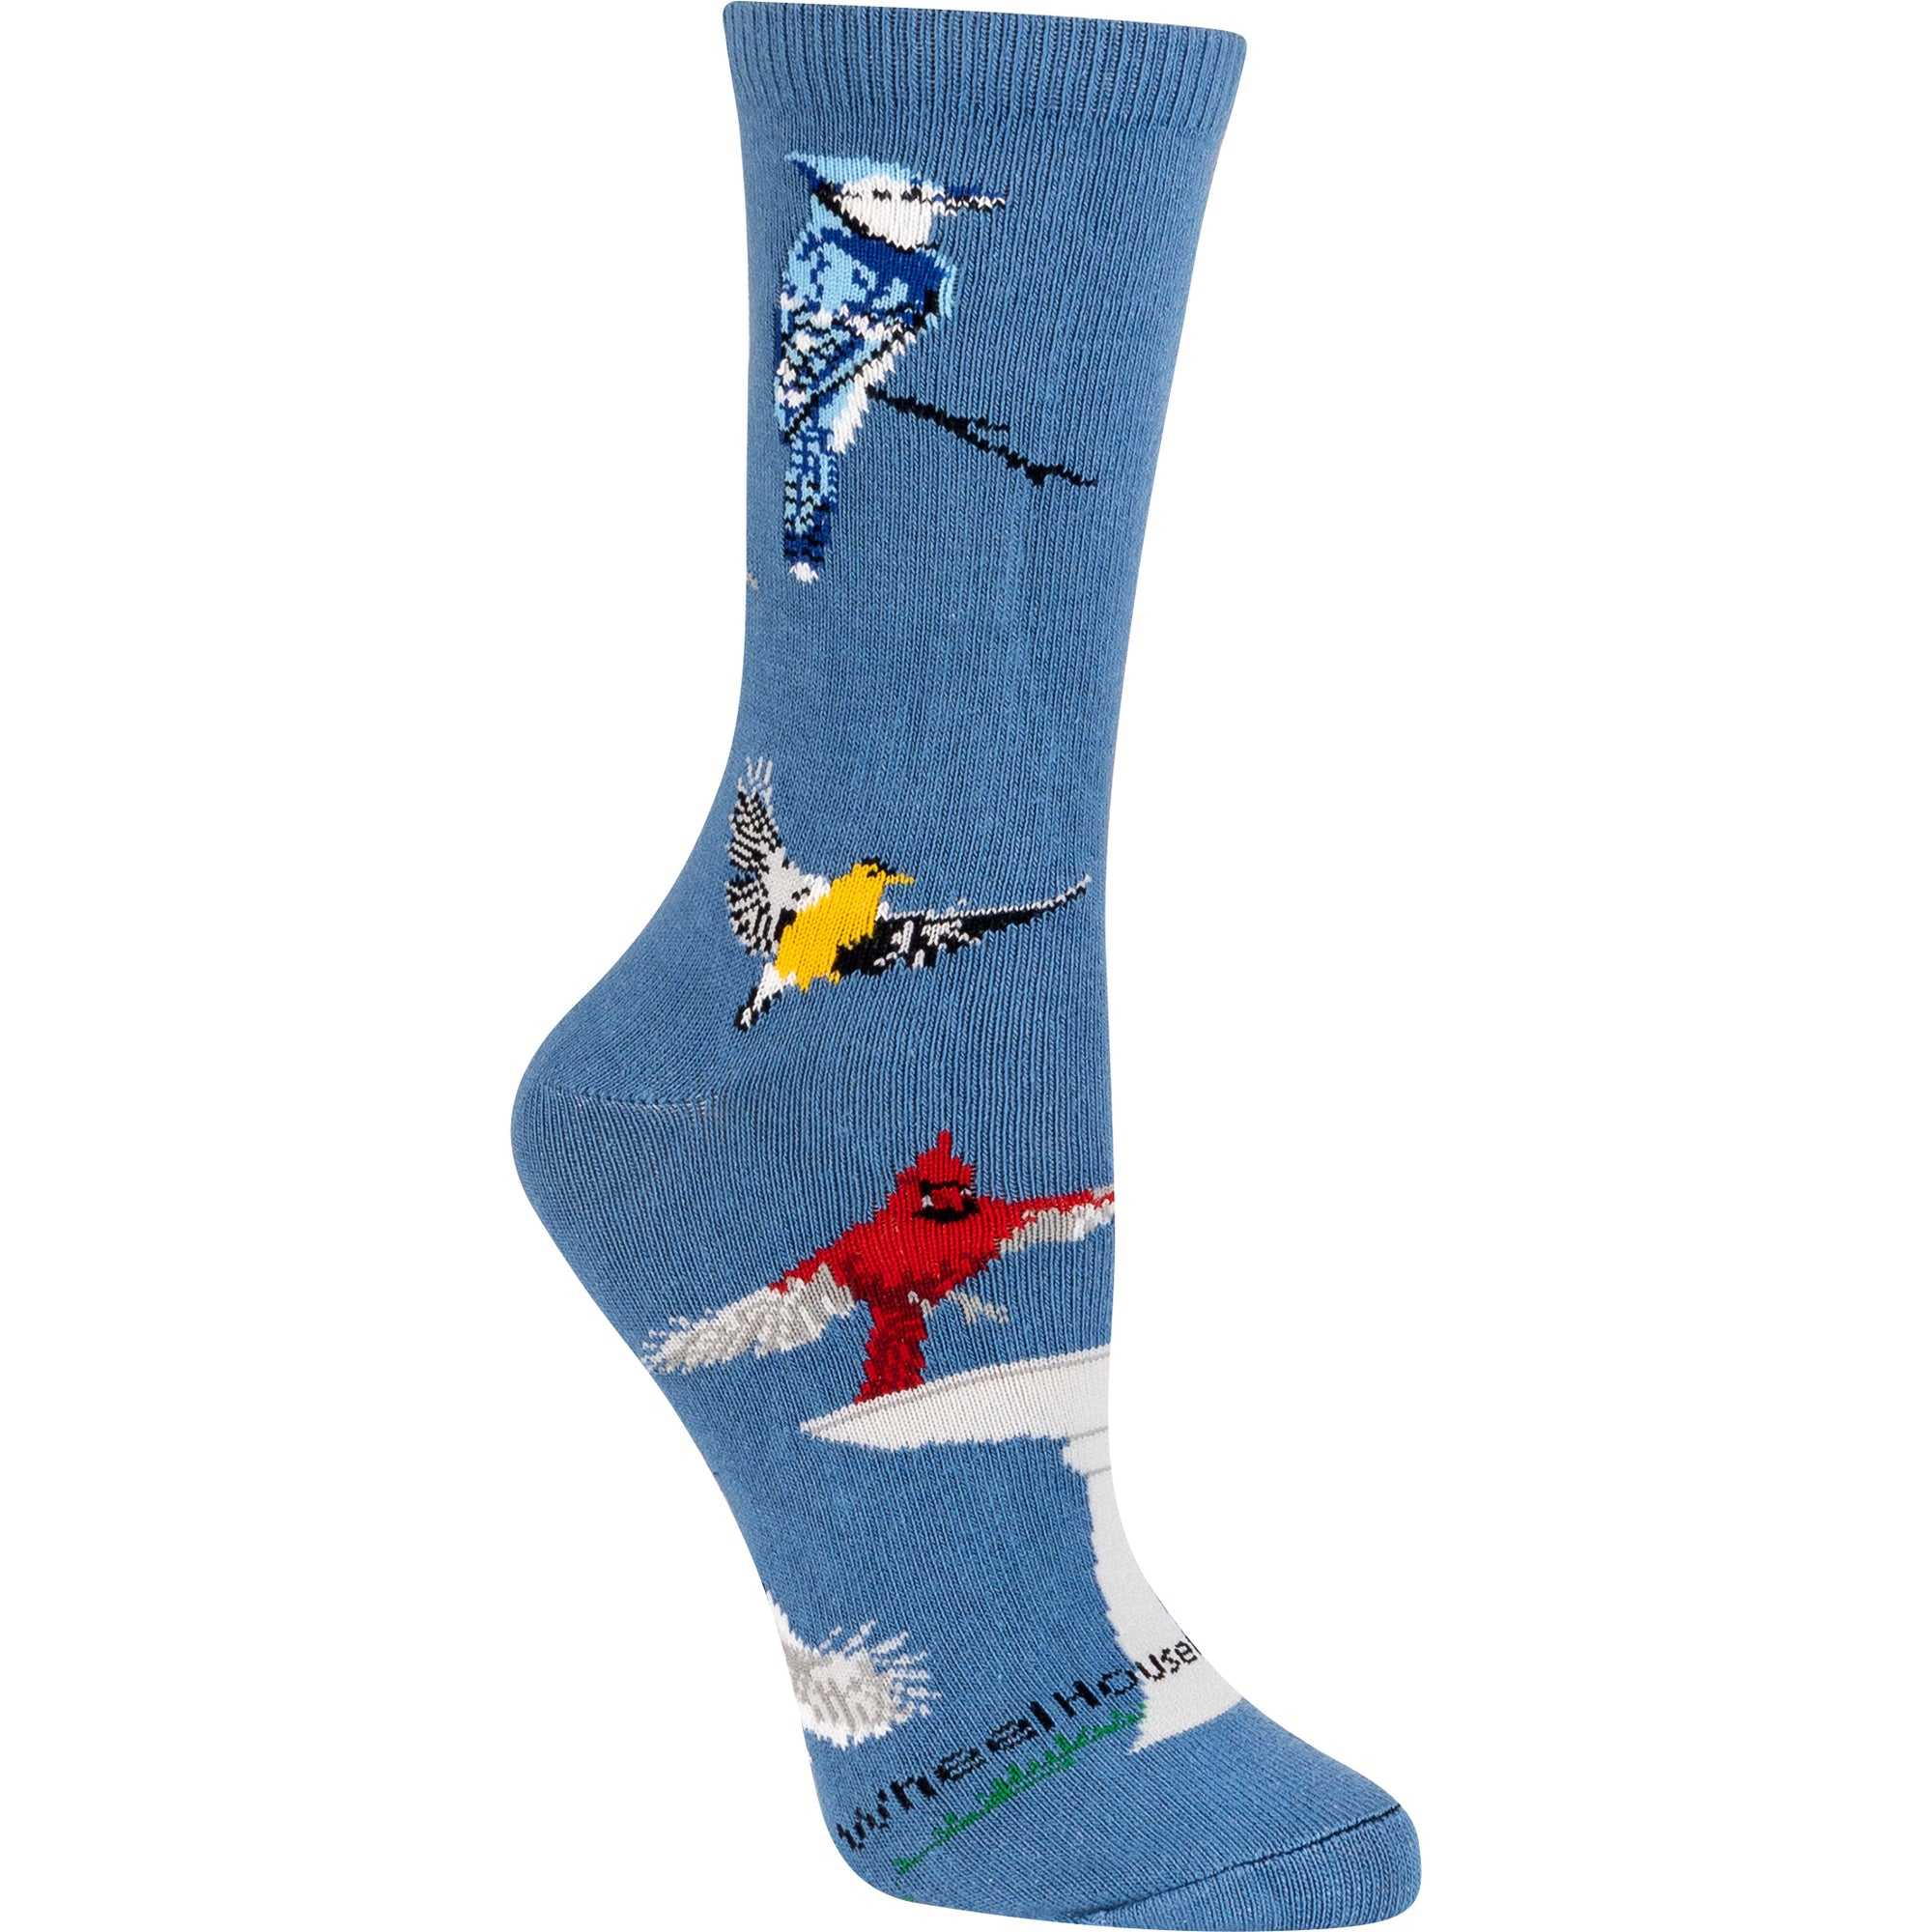 Backyard Birds Crew Socks on Blue